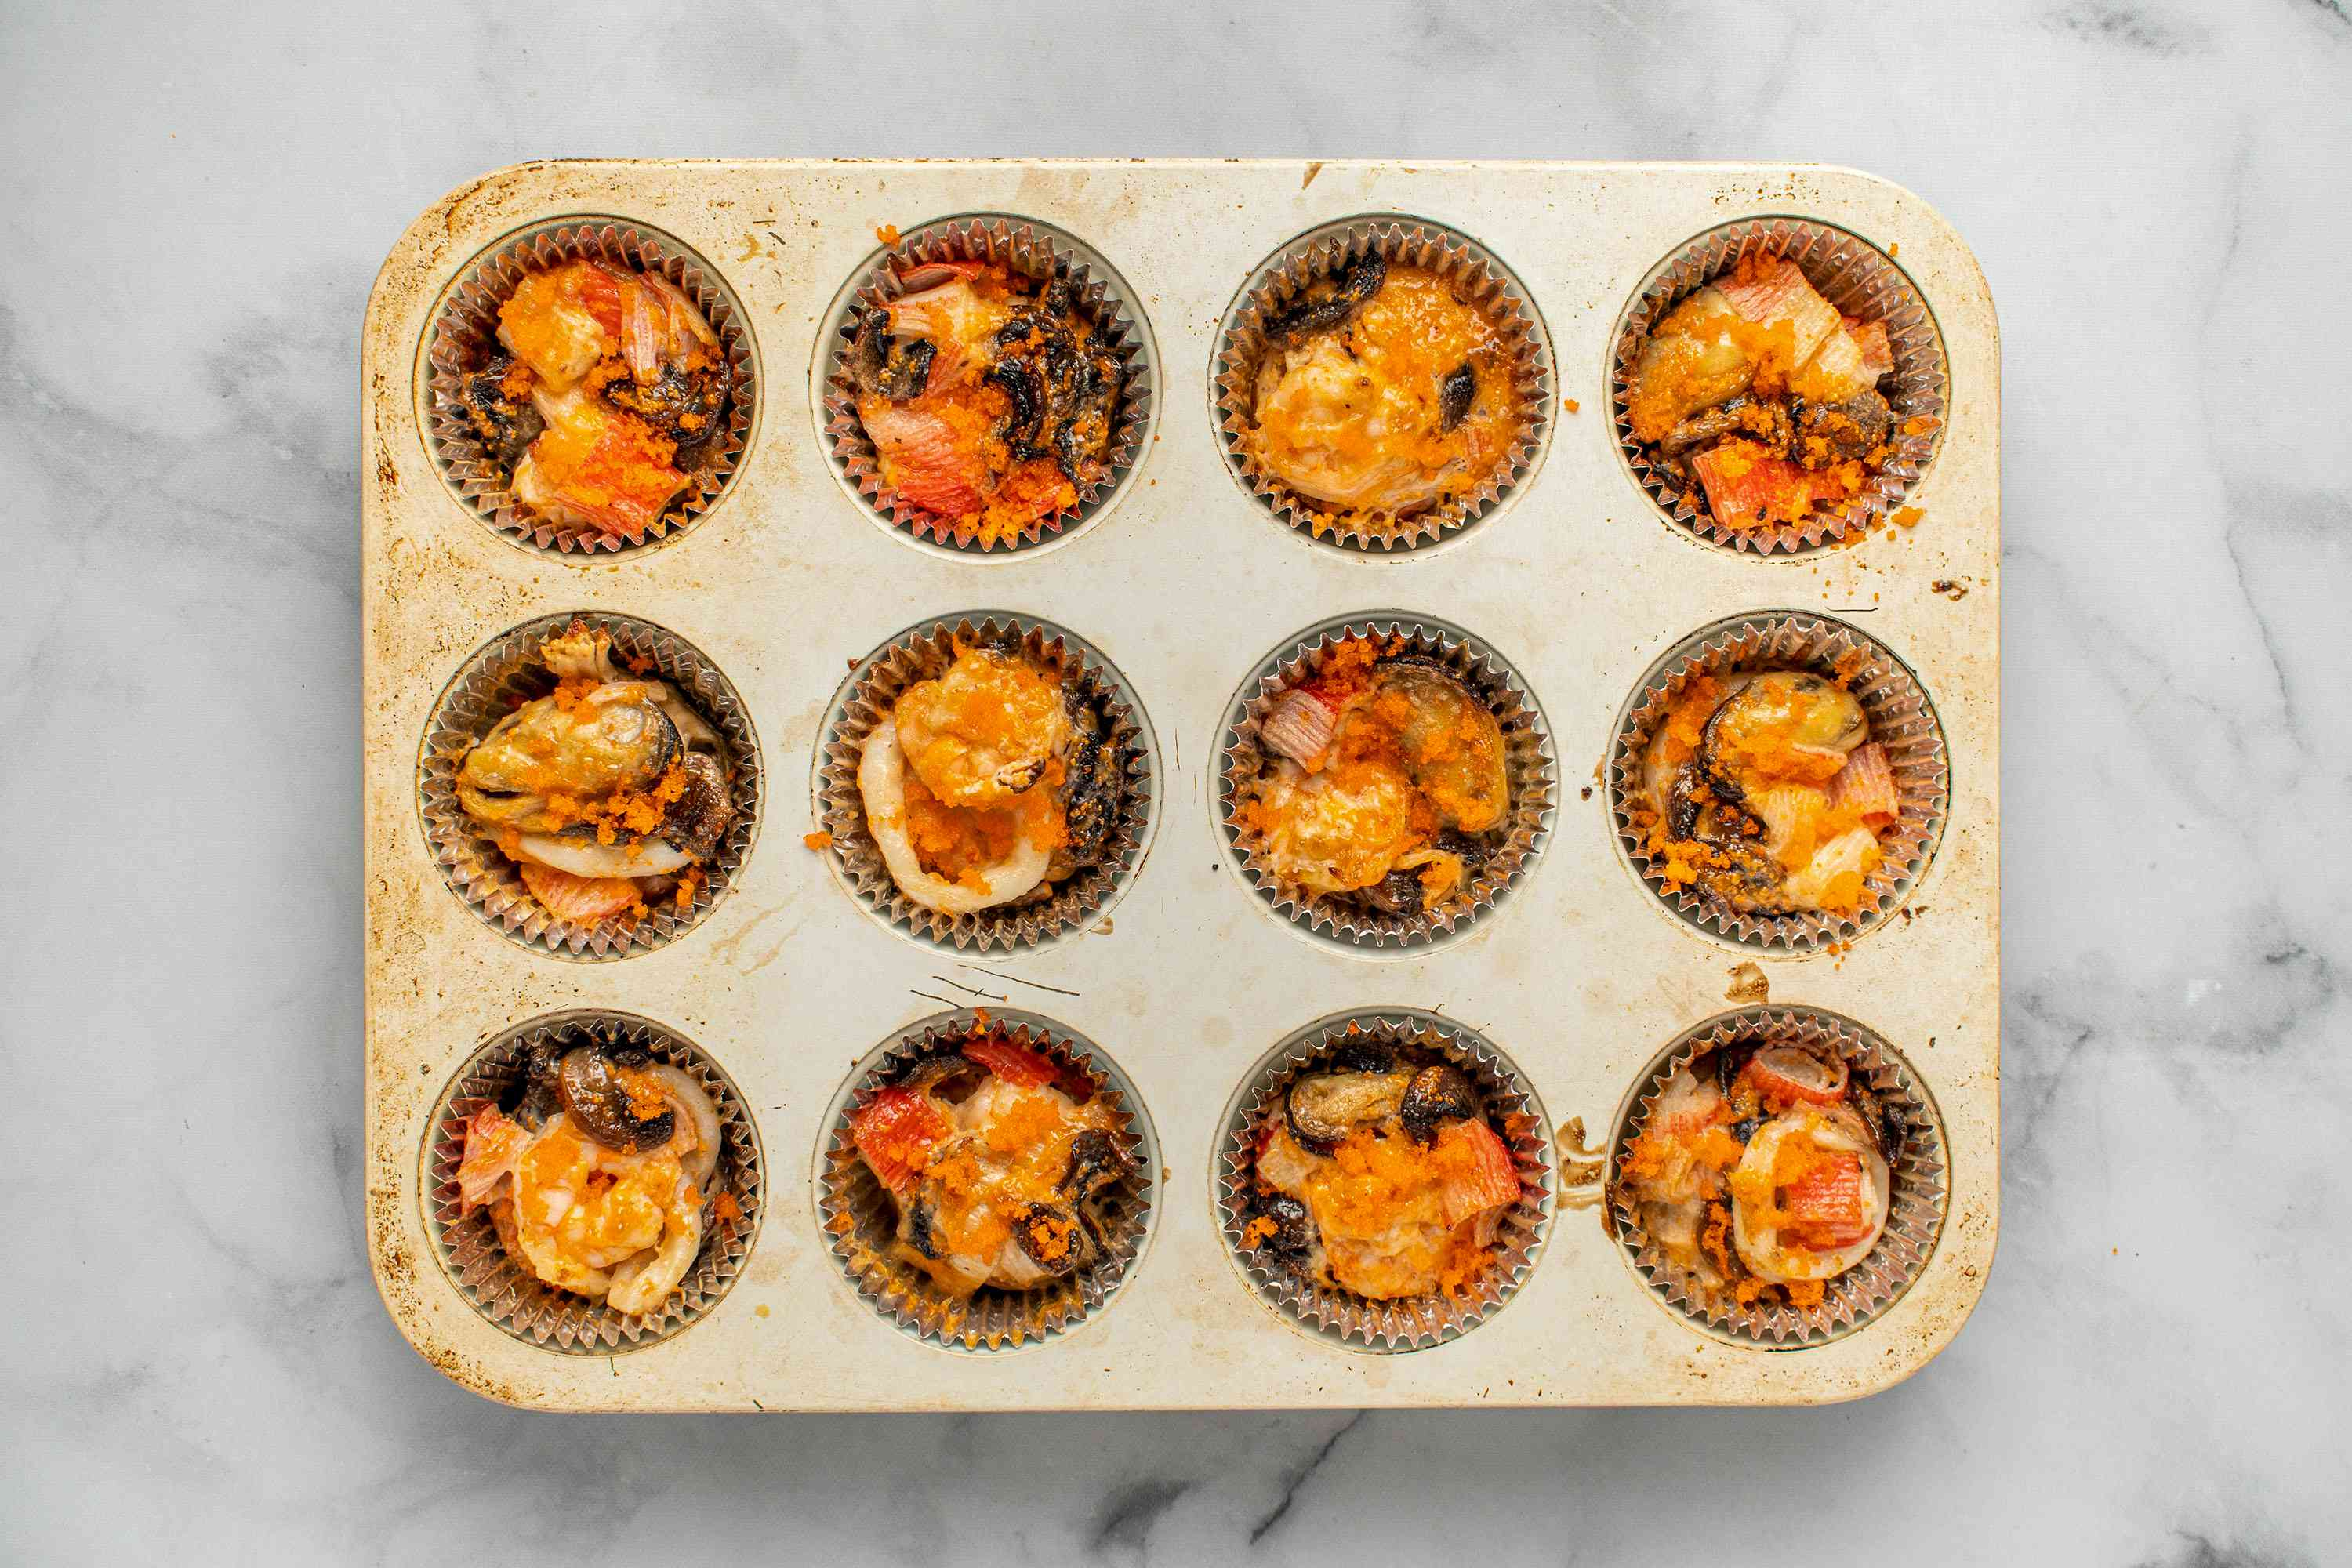 Japanese Baked Dynamite Appetizers with masago on top, in muffin tins